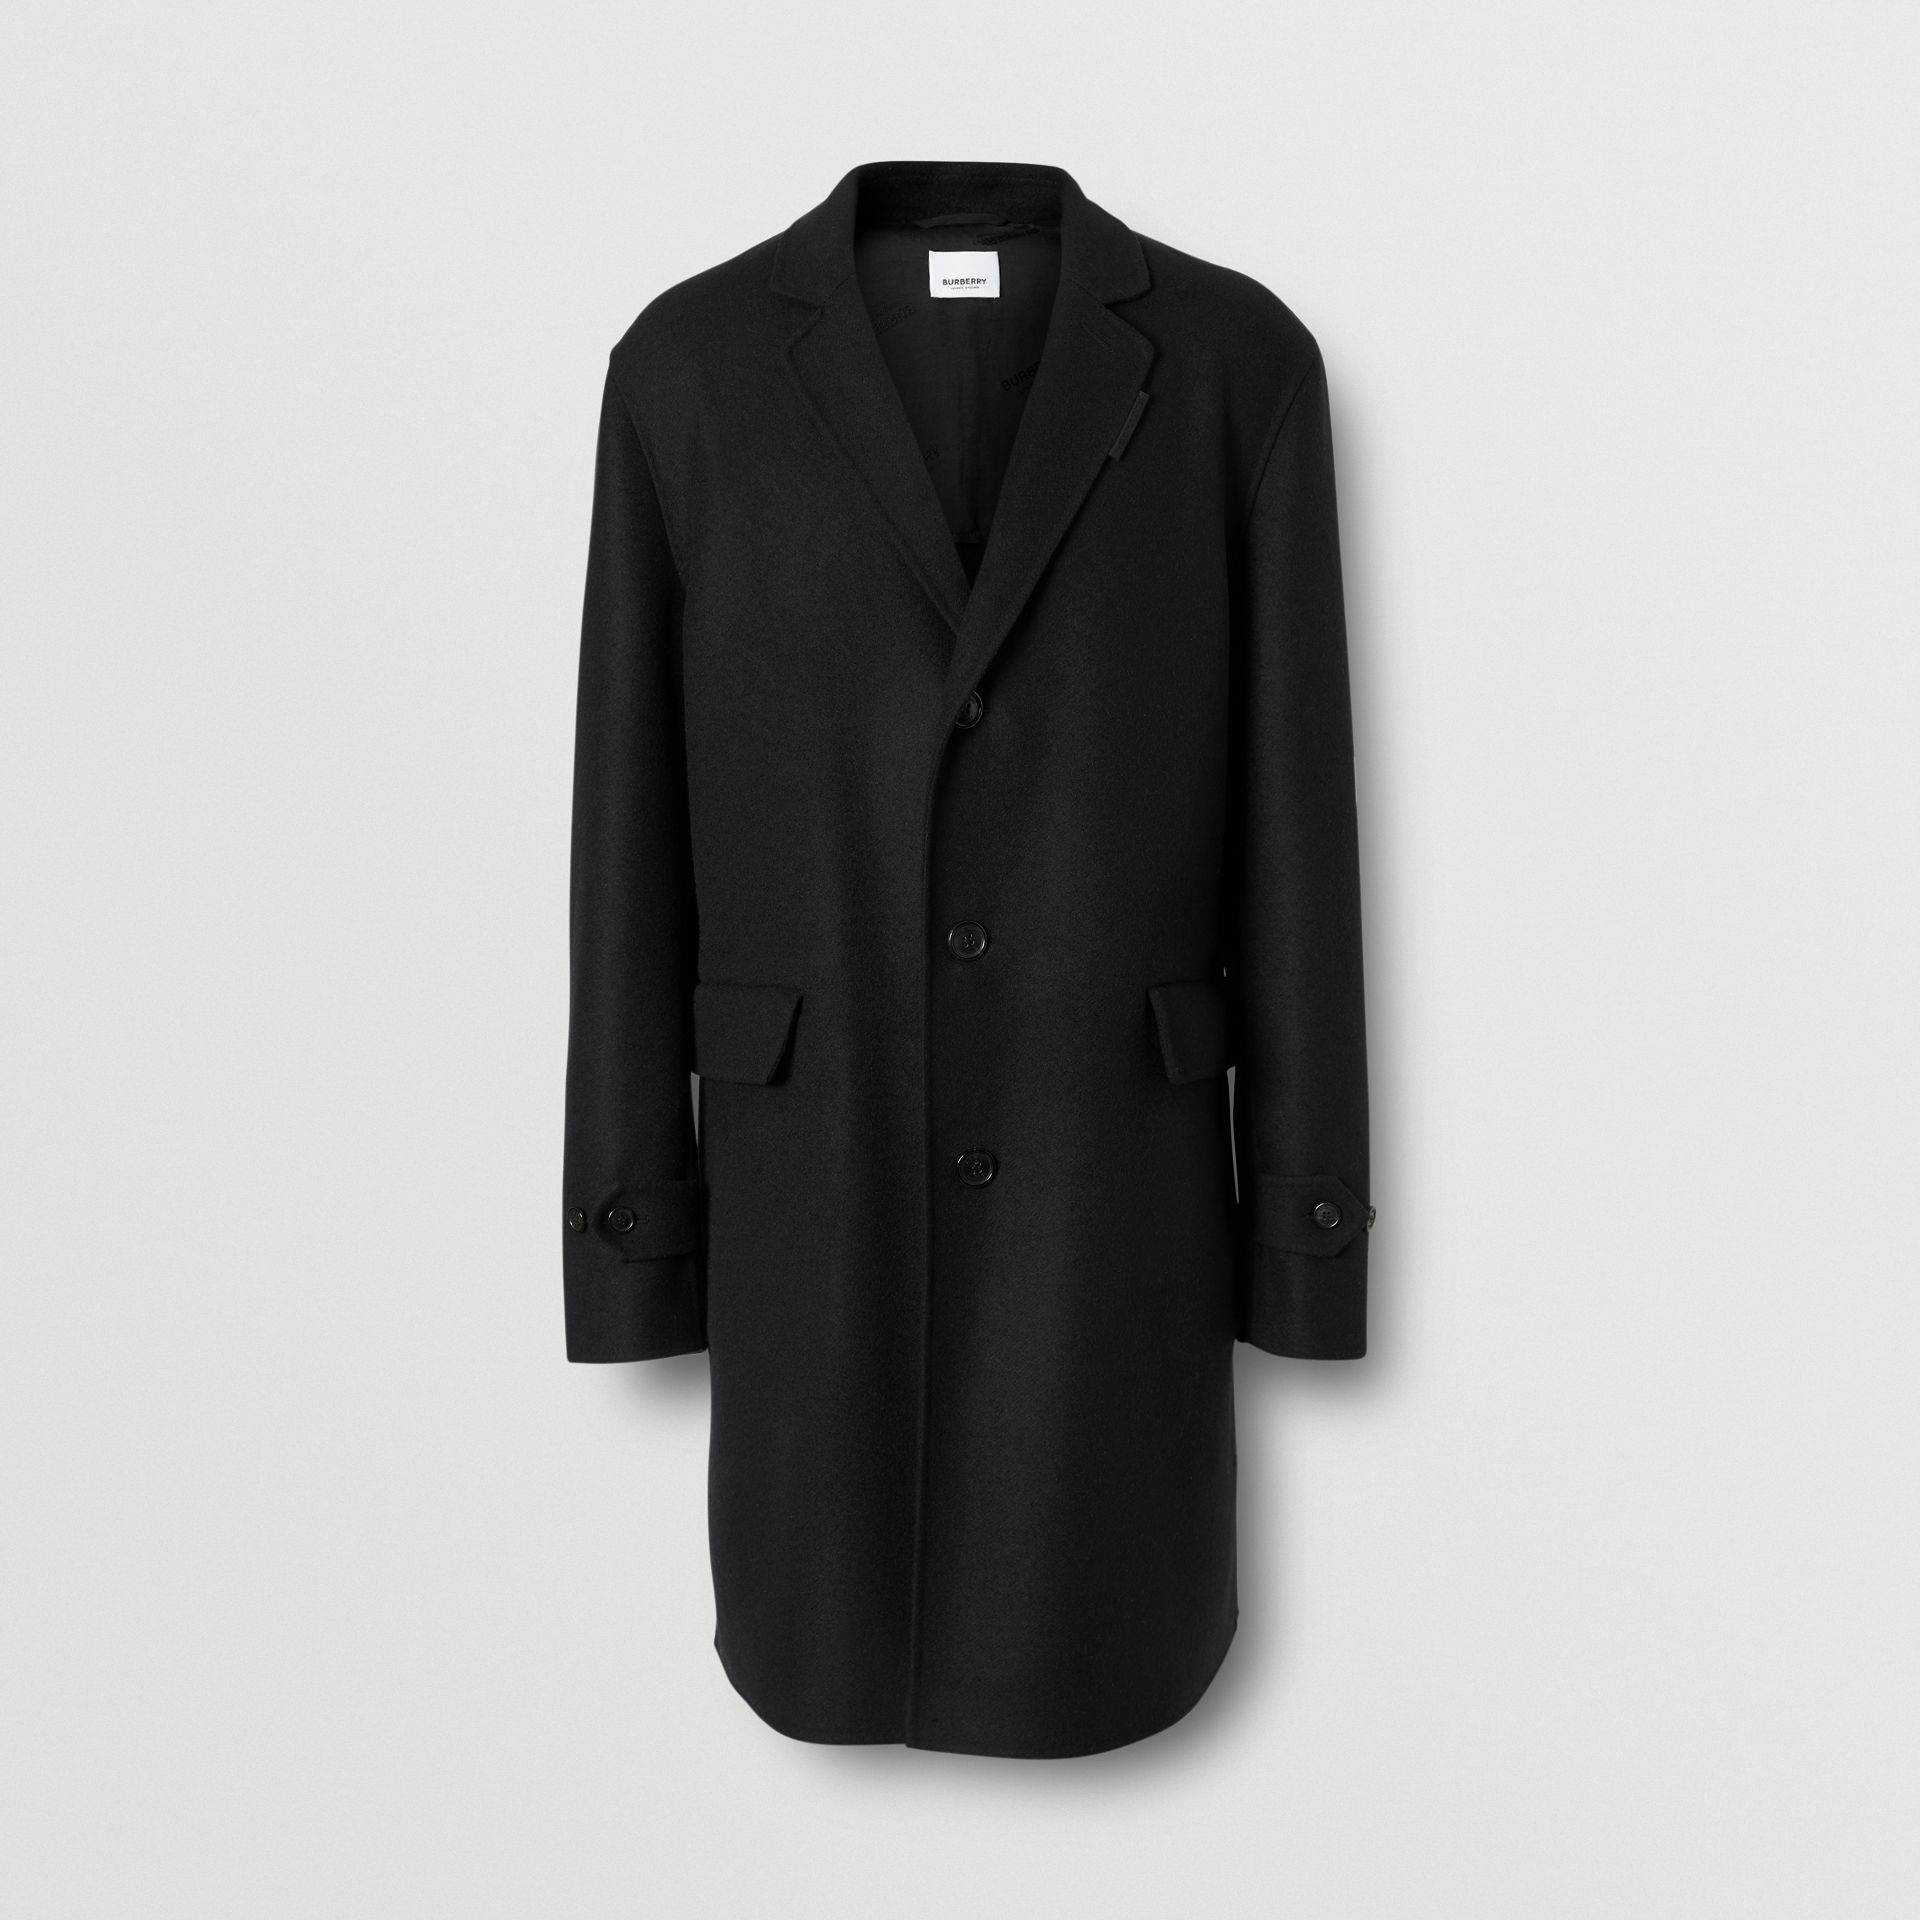 Wool Cashmere Lab Coat in Black - Men | Burberry - gallery image 2